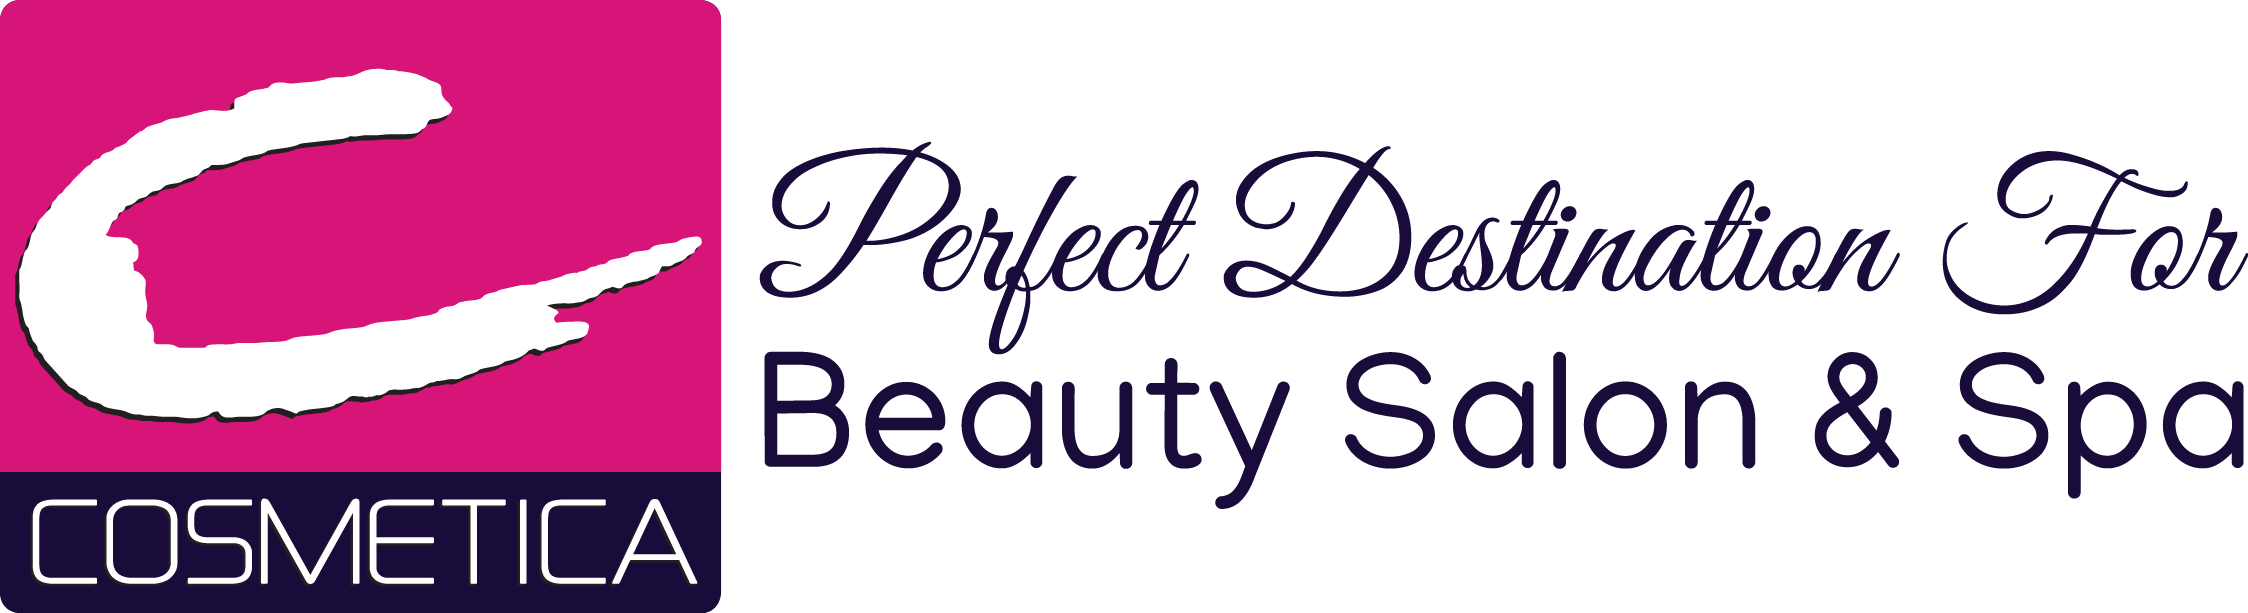 cosmetica beauty and personal care equipment trading llc